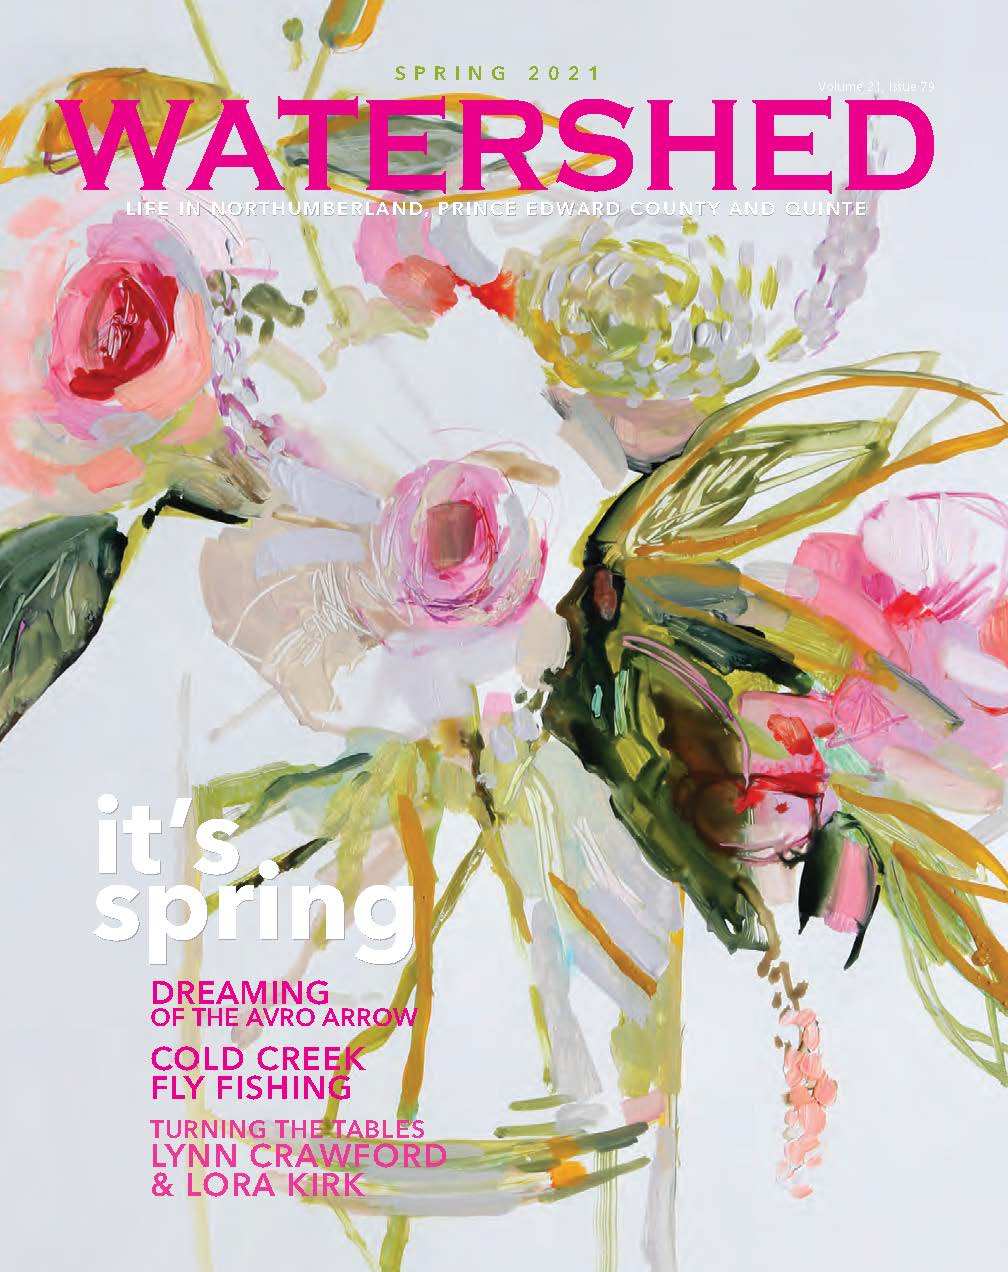 Watershed Magazine Spring 2021 cover